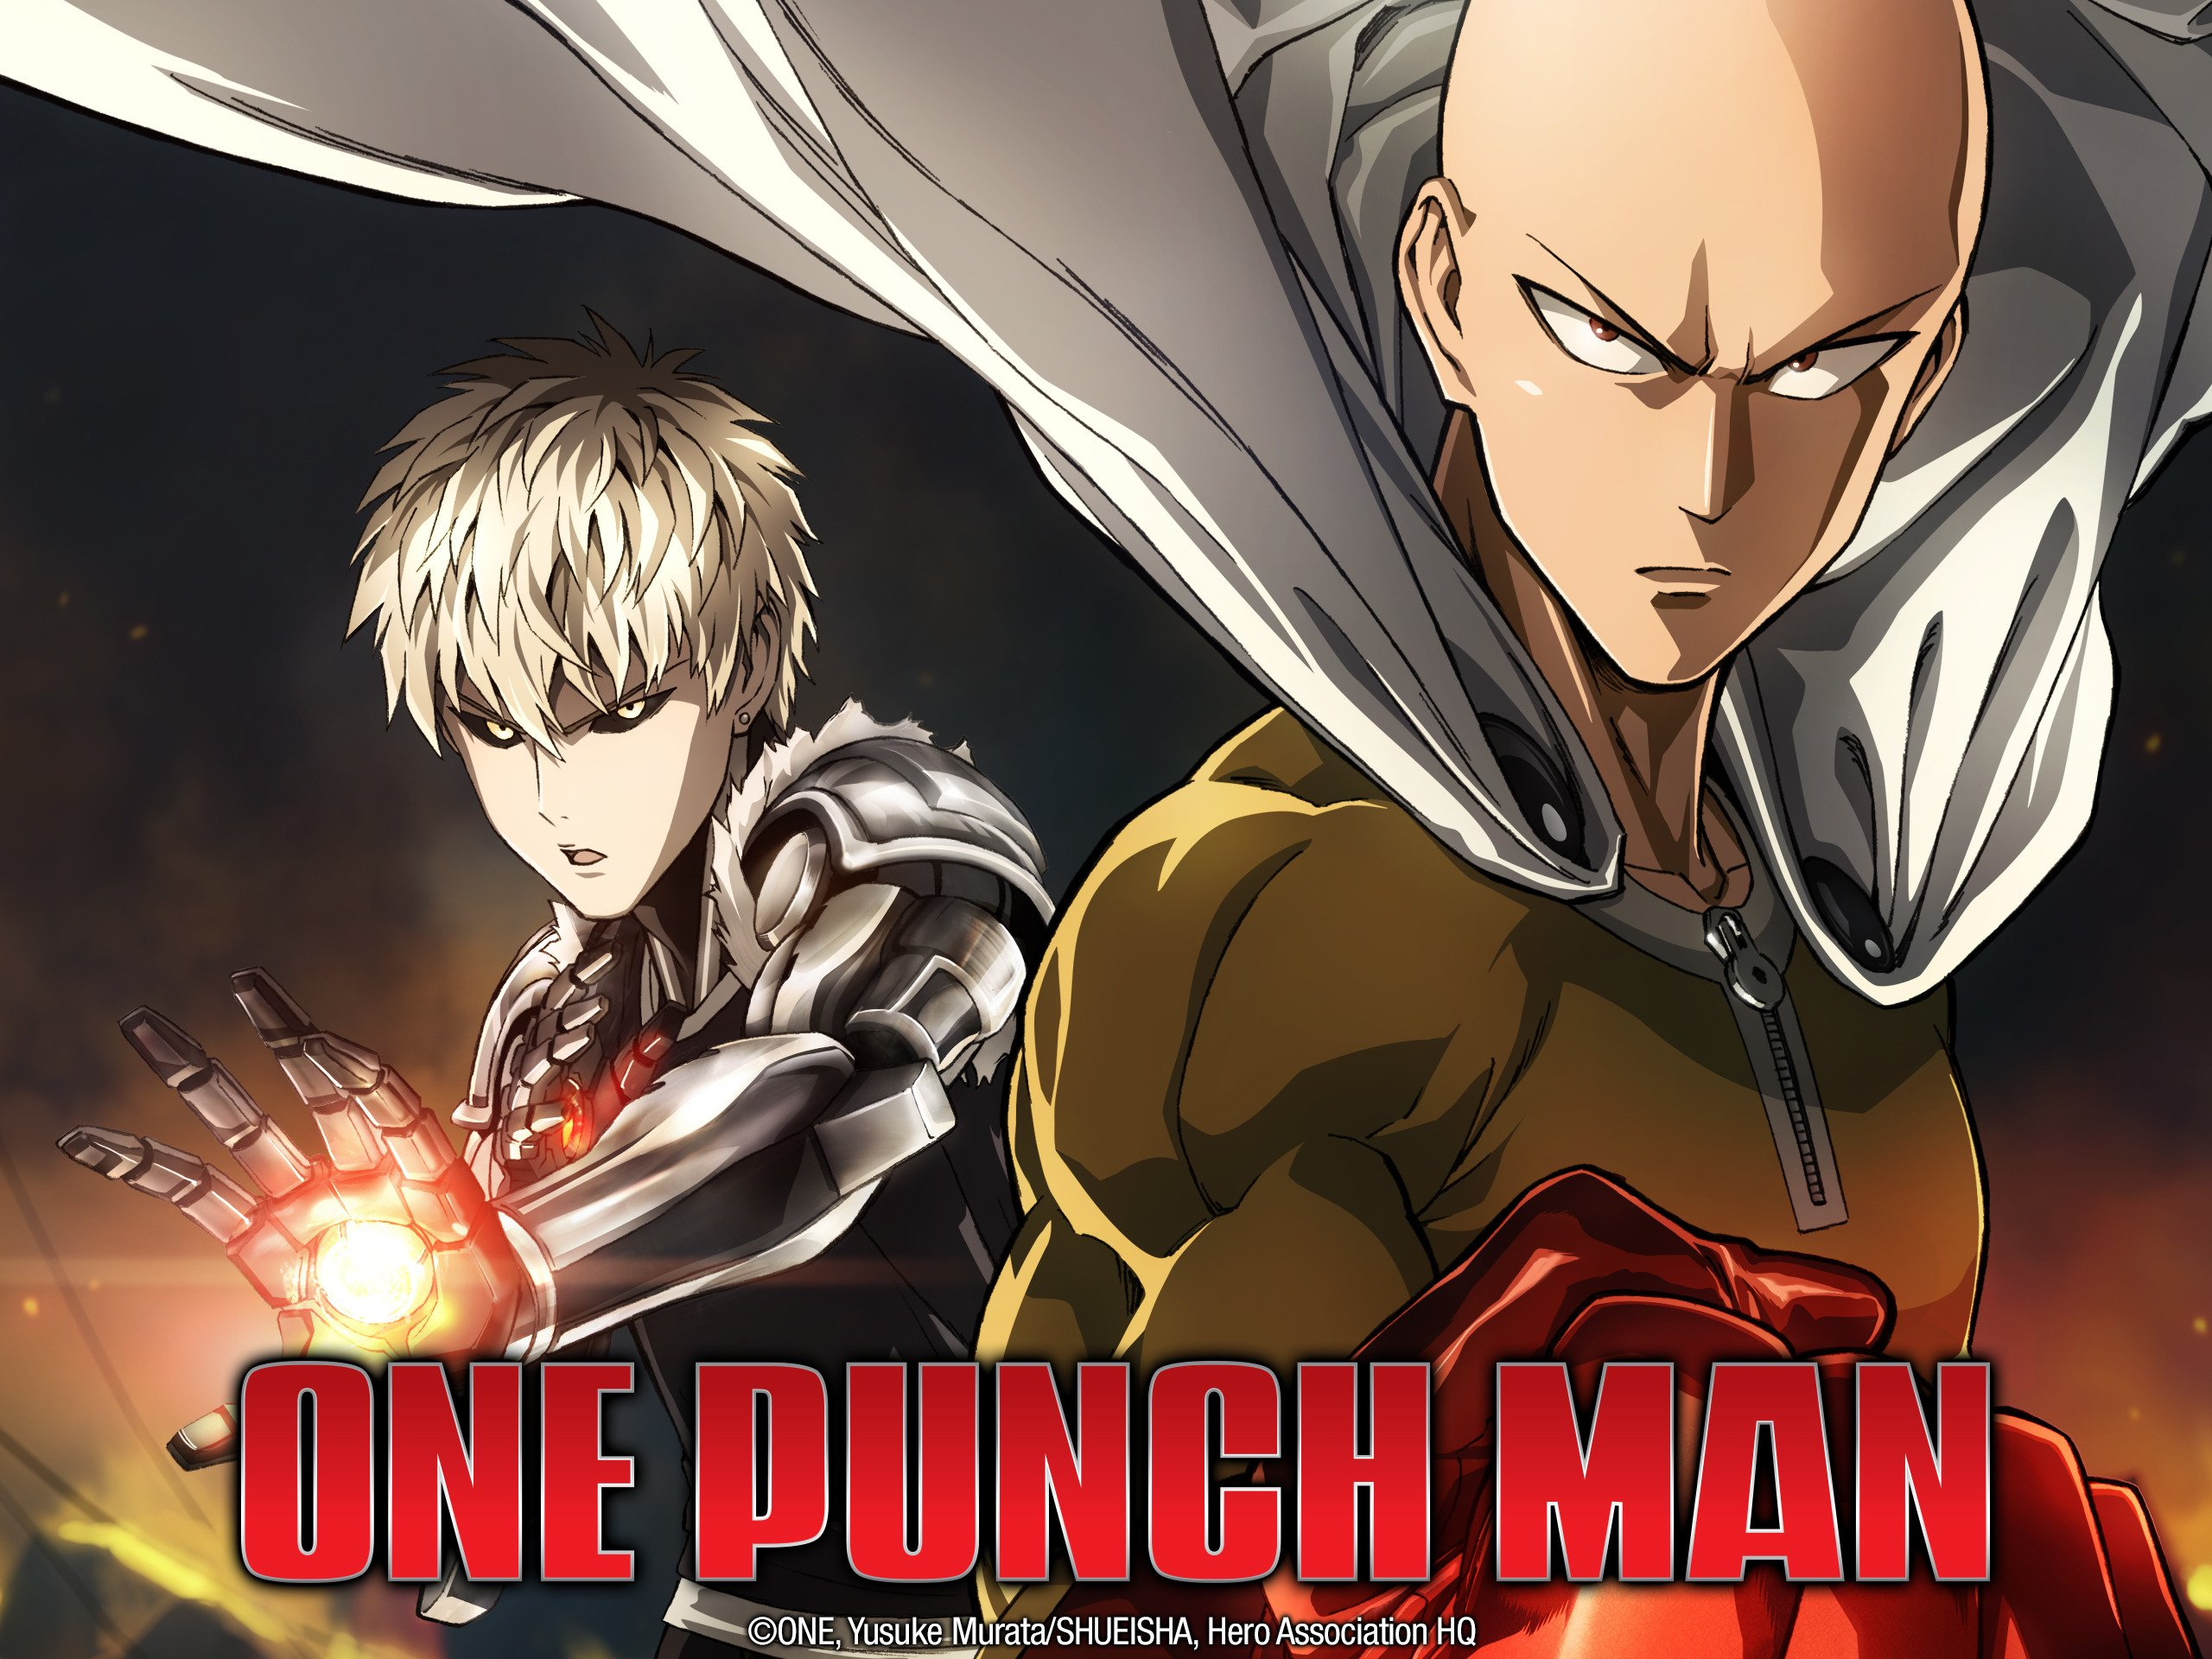 New leaks and spoilers for One Punch Man Season 3, Release, Raw and much more.